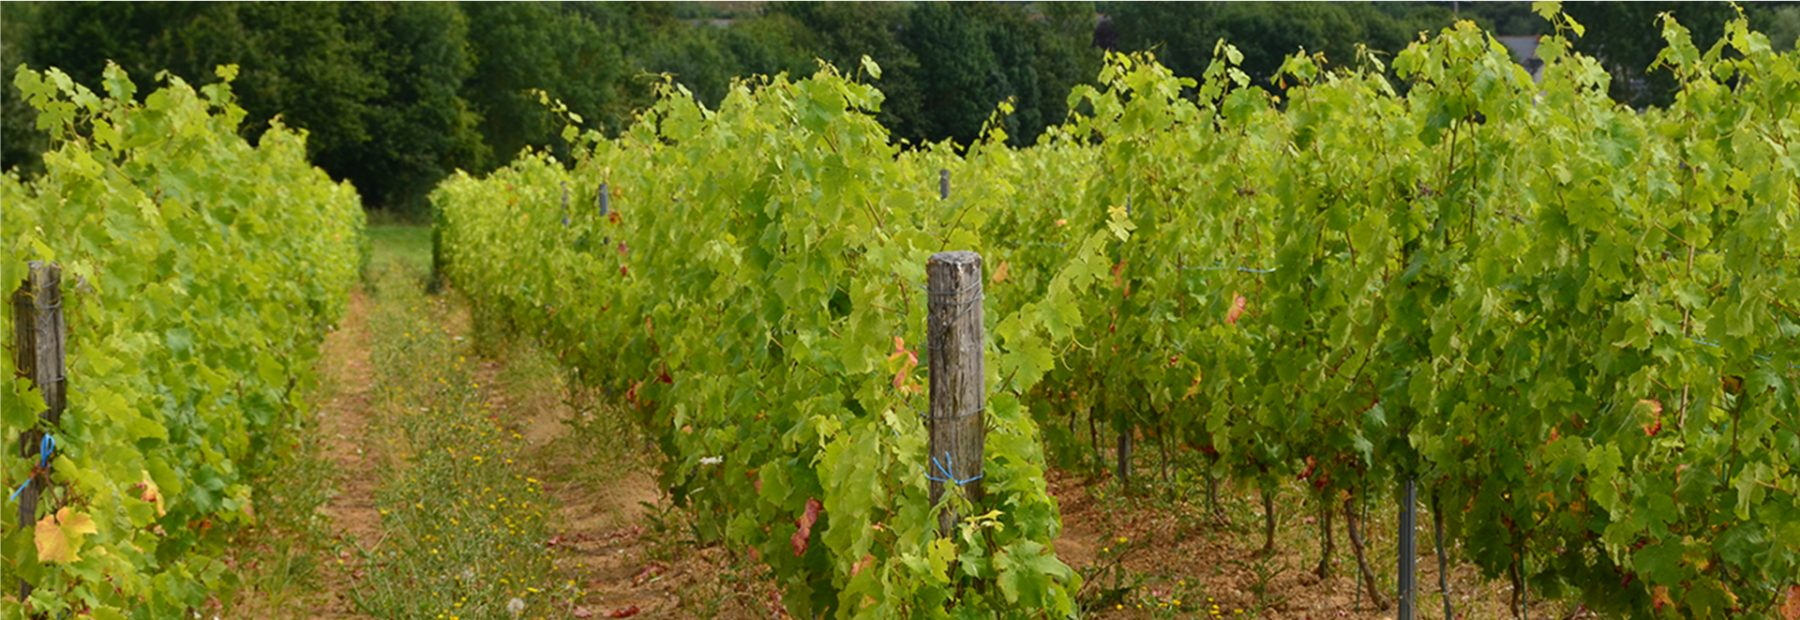 ANJOU : COTEAUX DU LAYON 17-ha WINE ESTATE